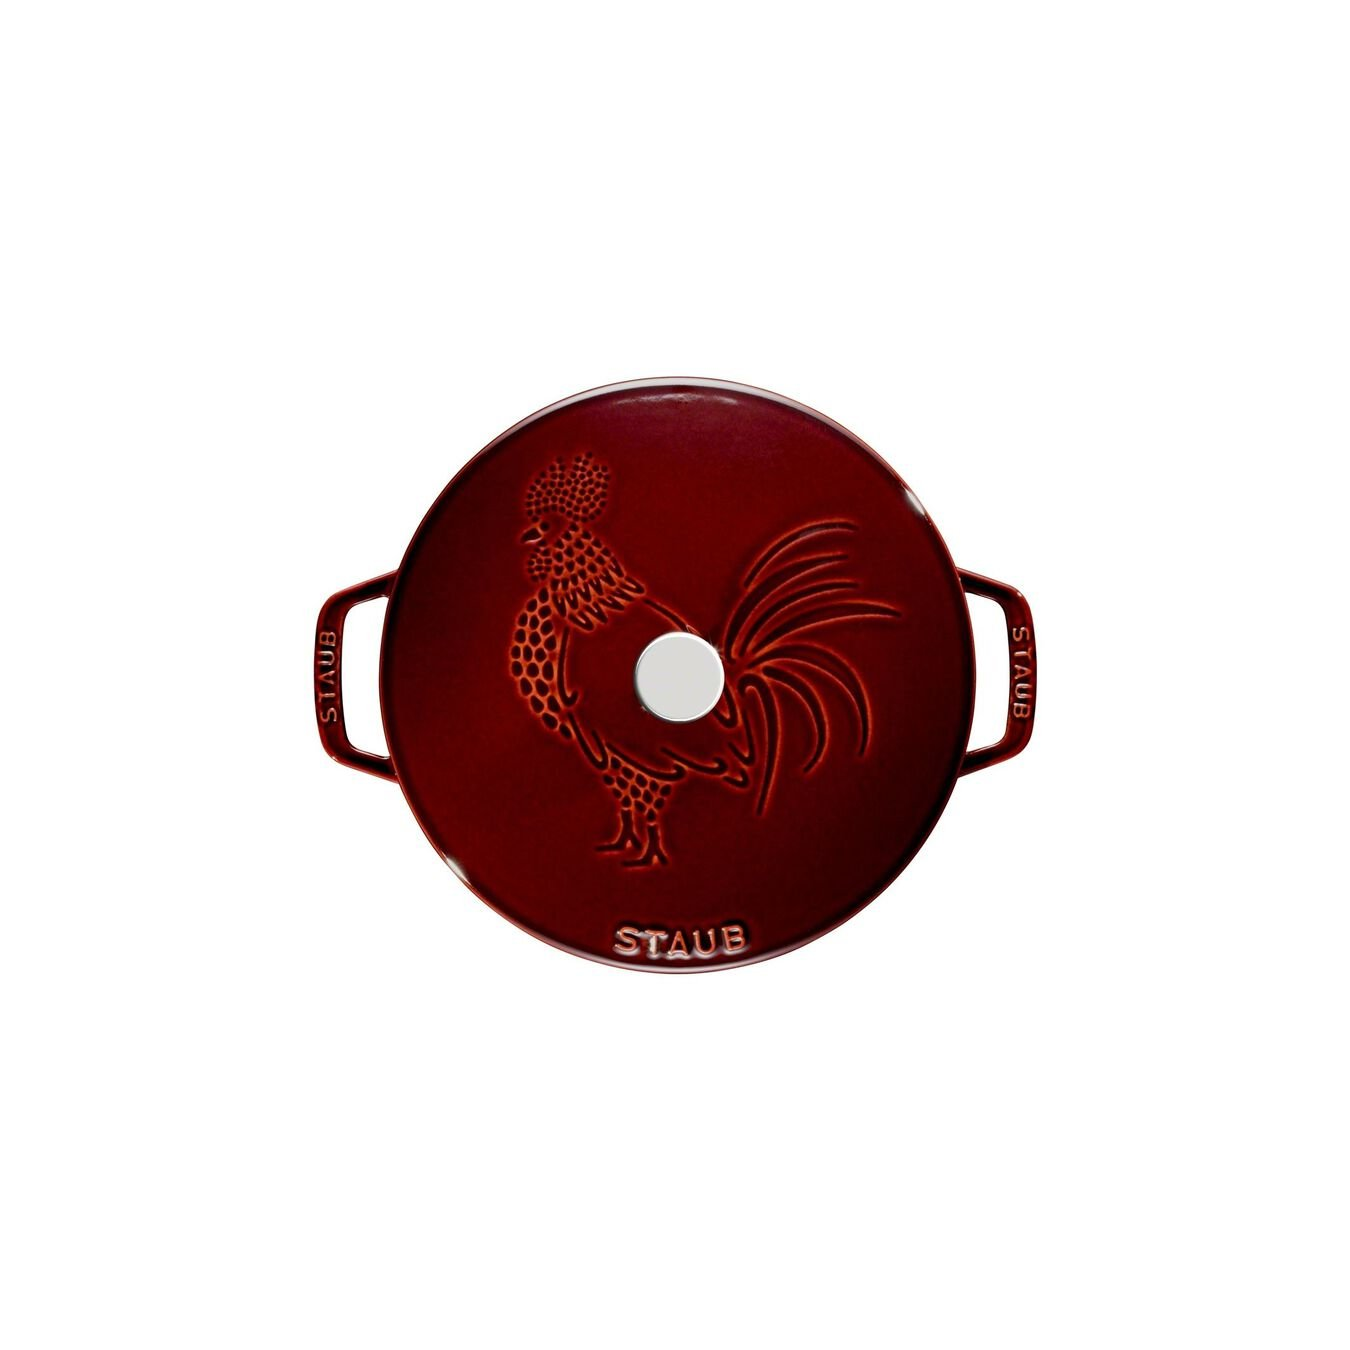 3.75 qt, Essential French Oven Rooster Lid, grenadine,,large 11